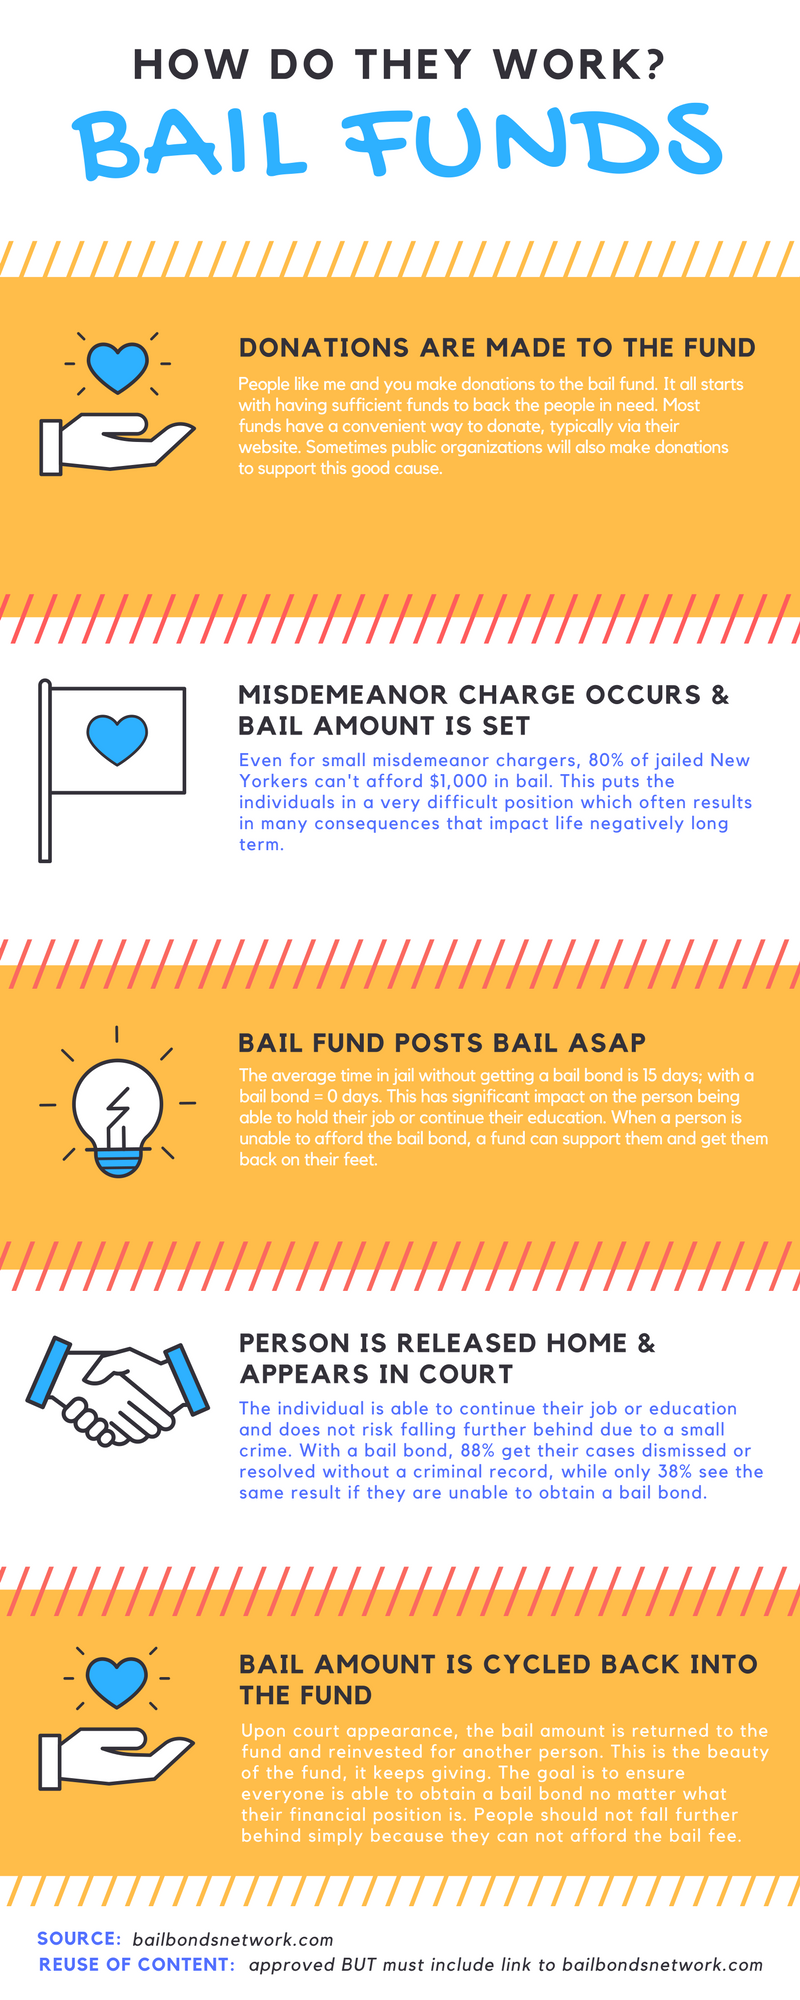 Bail Funds - Charitable Bail Organizations - Infographic